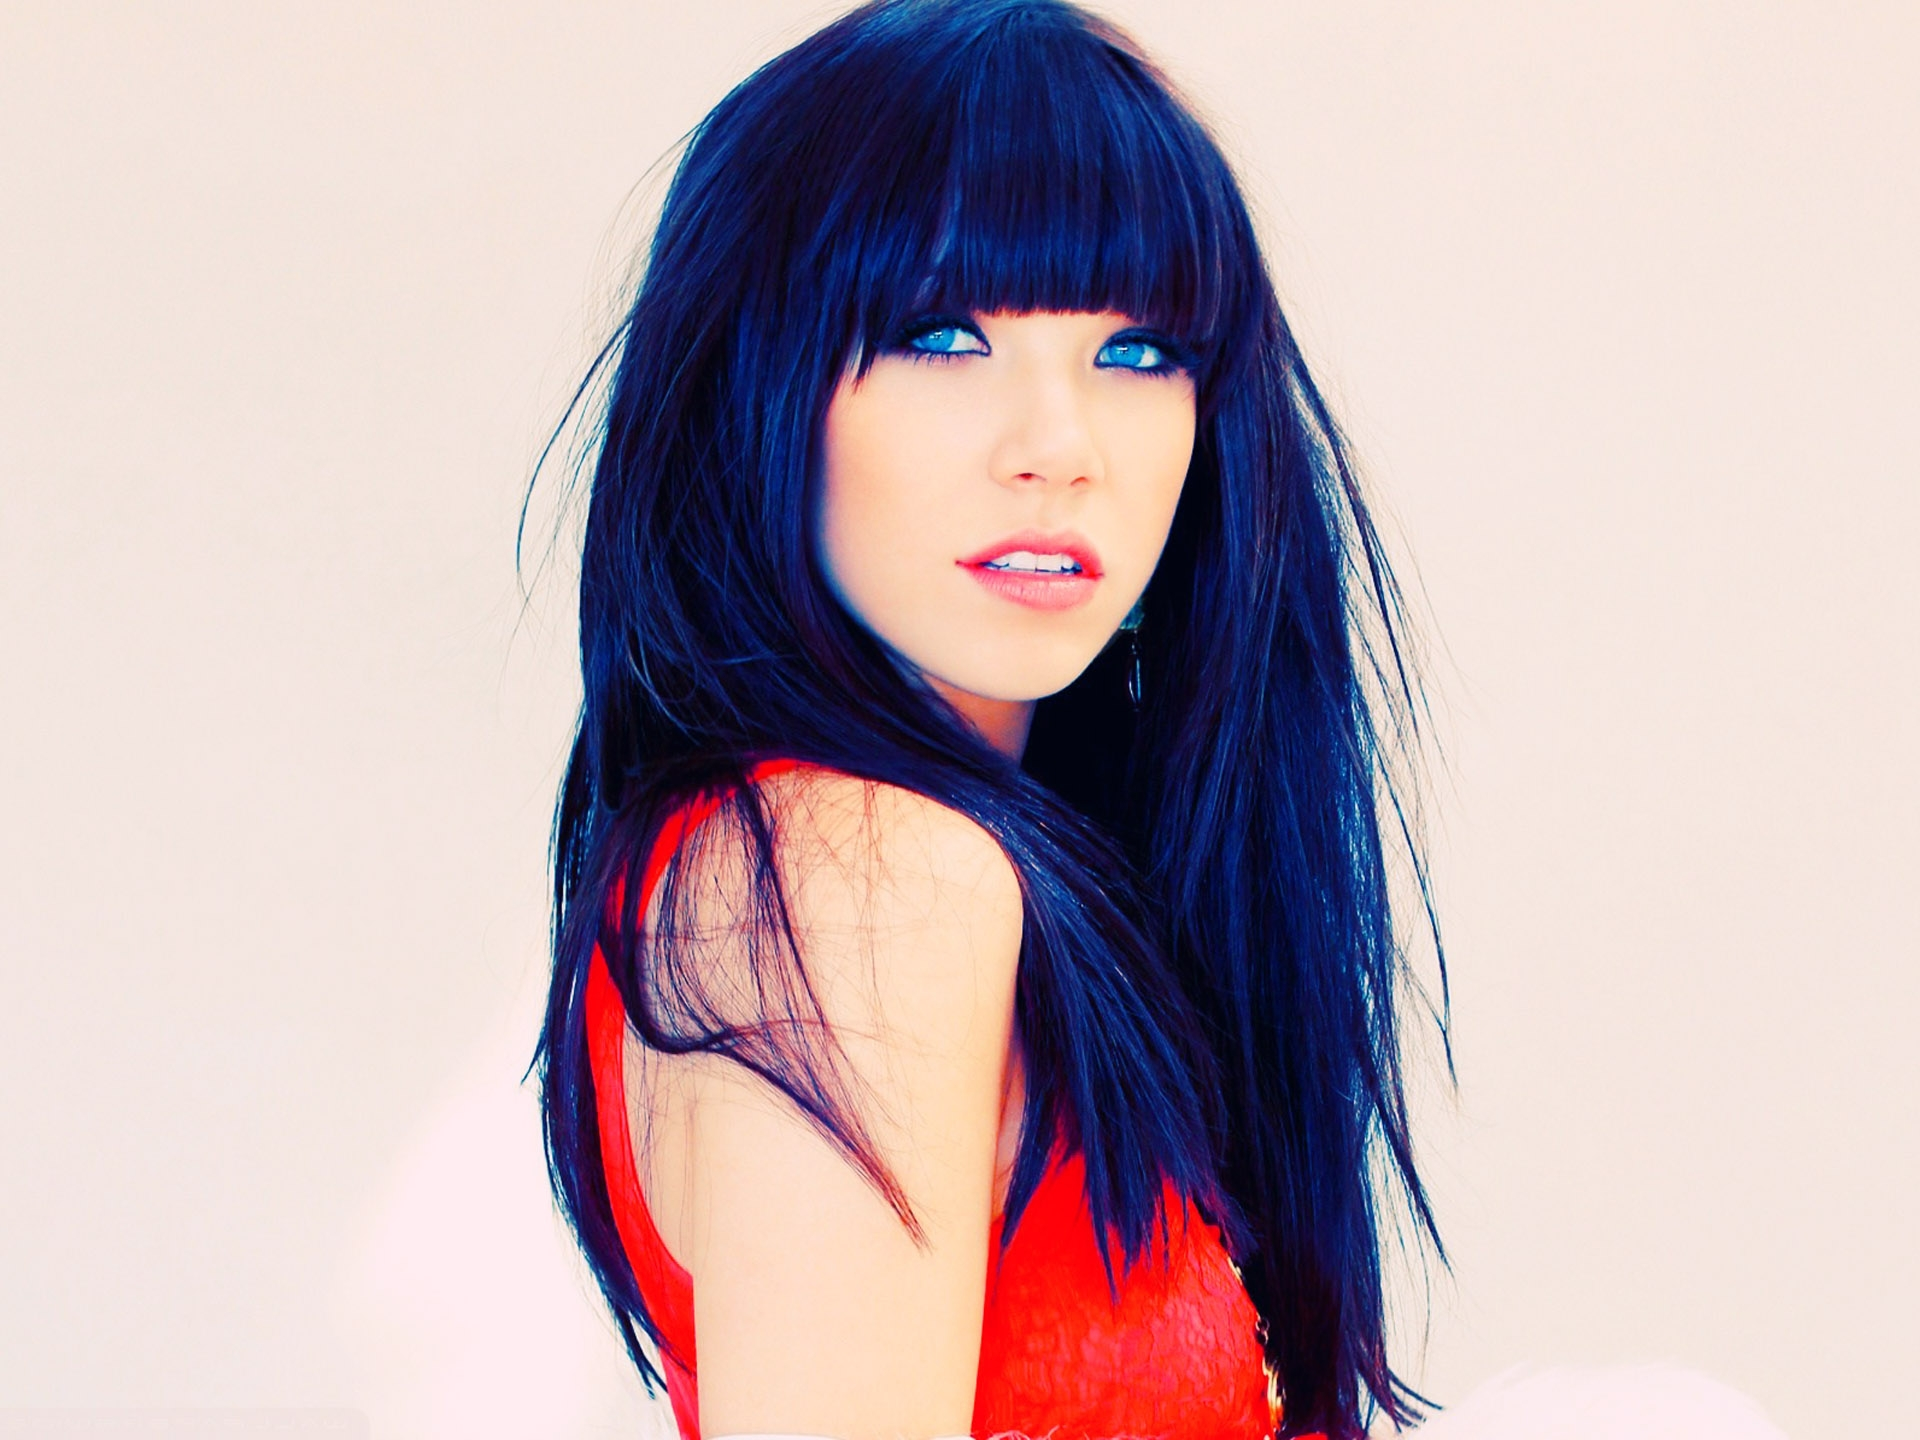 Carly Rae Jepsen Bright Blue Hair Colors 54 Beauty Model